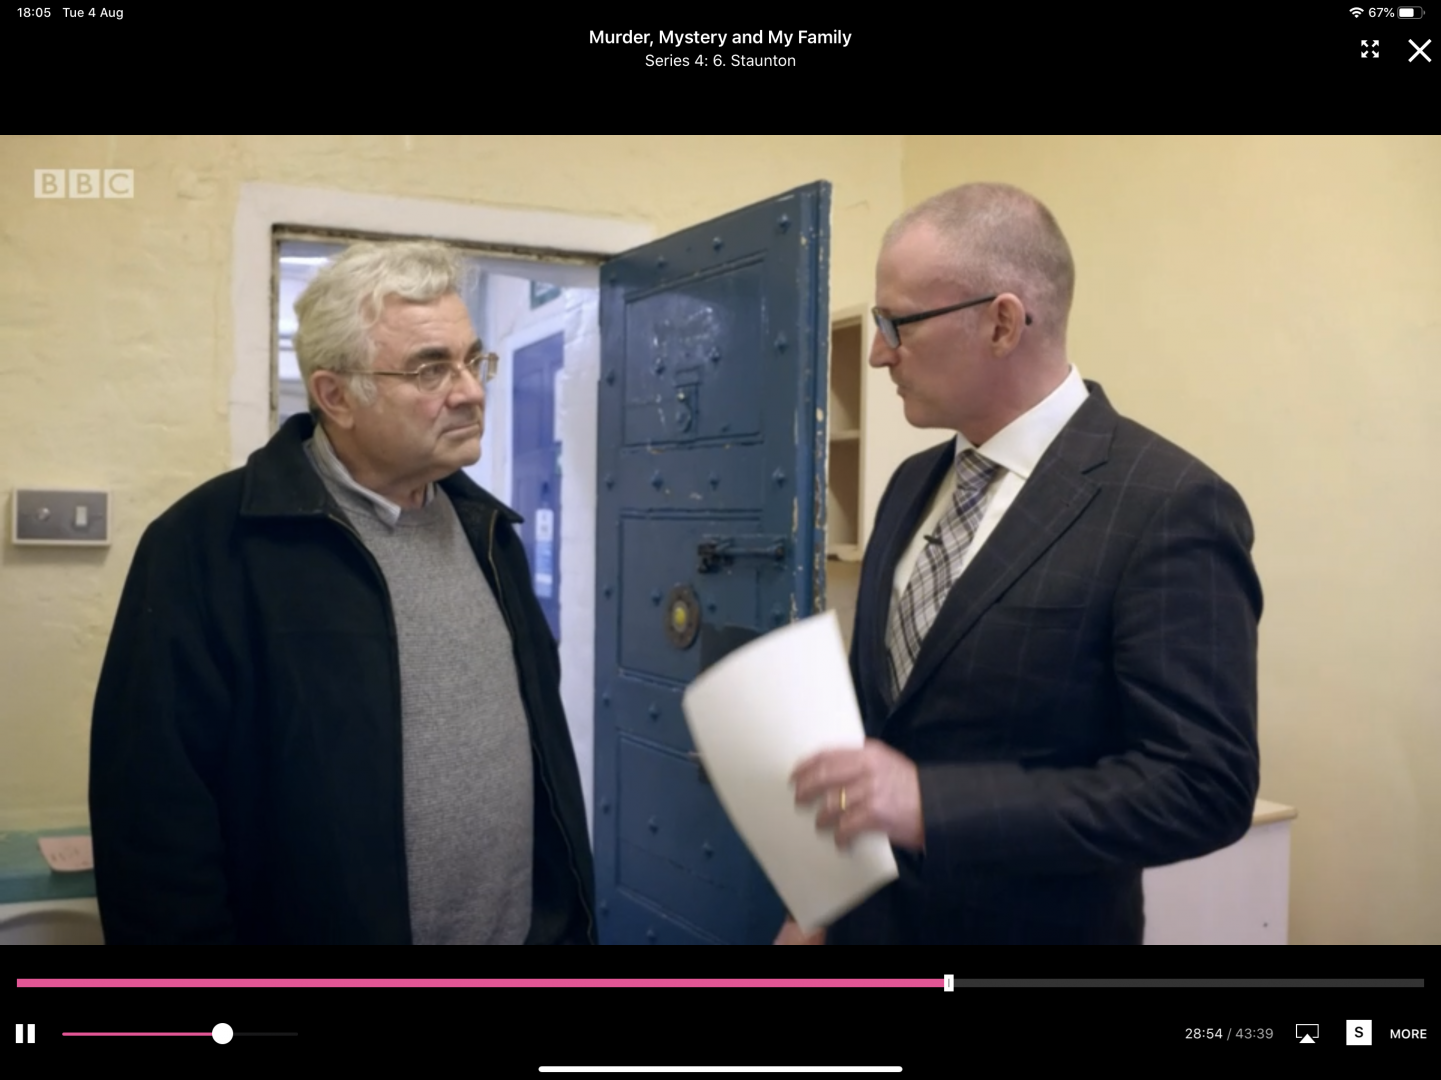 """Our Mr Seargeant (""""The Guv"""", right) gives reassurance Nigel (left) to the grandson of Louis Staunton who was convicted of murder in 1877 and housed in one of these cells at Maidstone Prison. Check if on BBC iPlayer."""